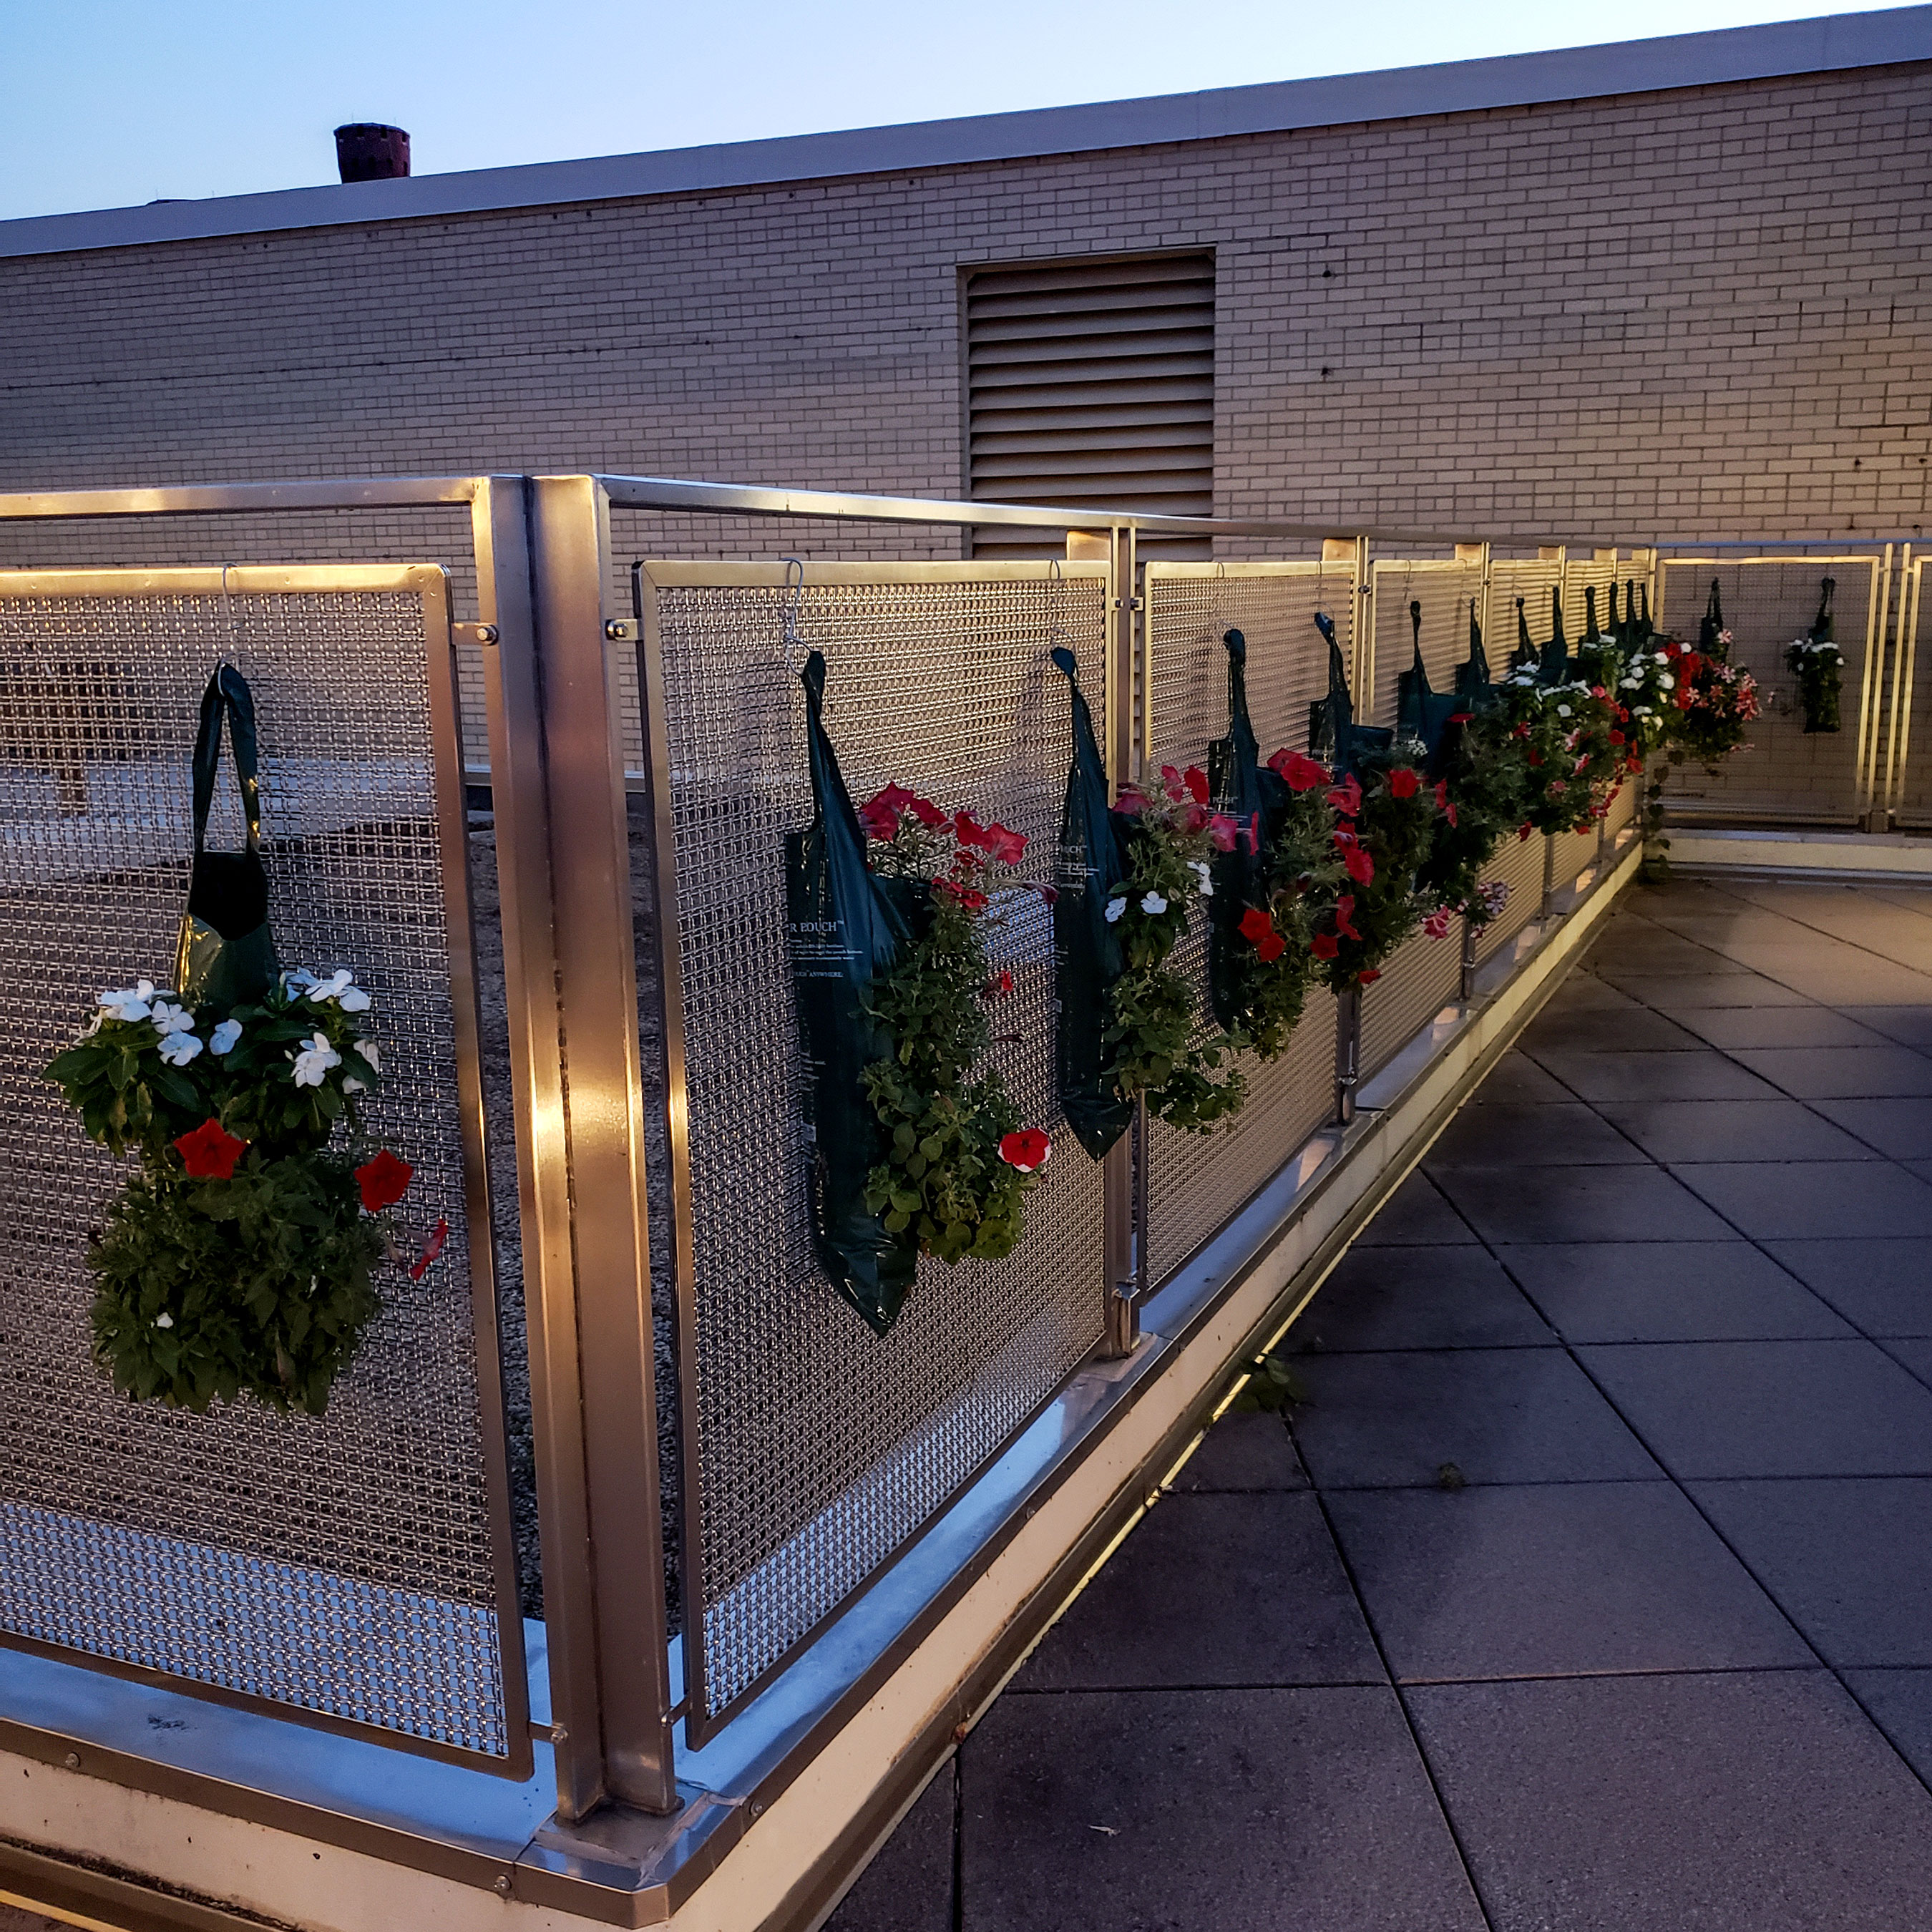 The gating, using Banker Wire's M22-22, around the roof of the Pyle Center is hung with plants for an event.